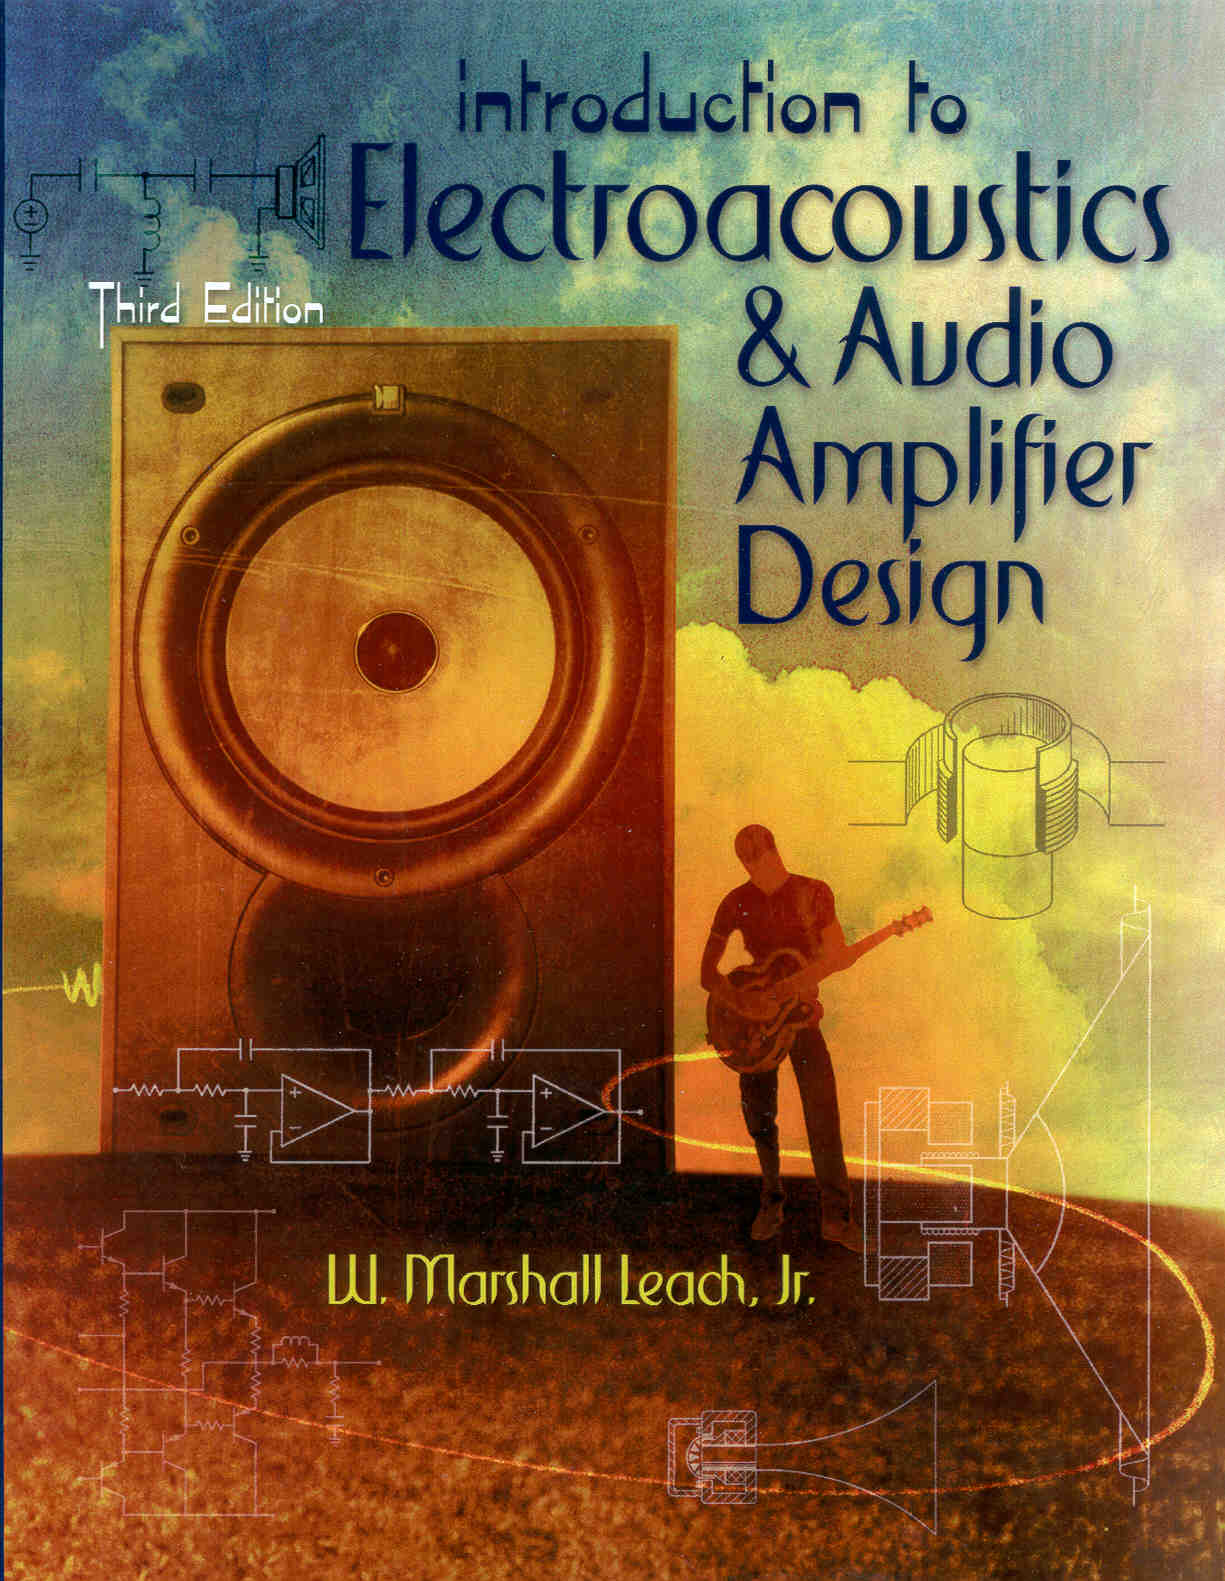 Introduction to Electroacoustics and Audio Amplifier Design